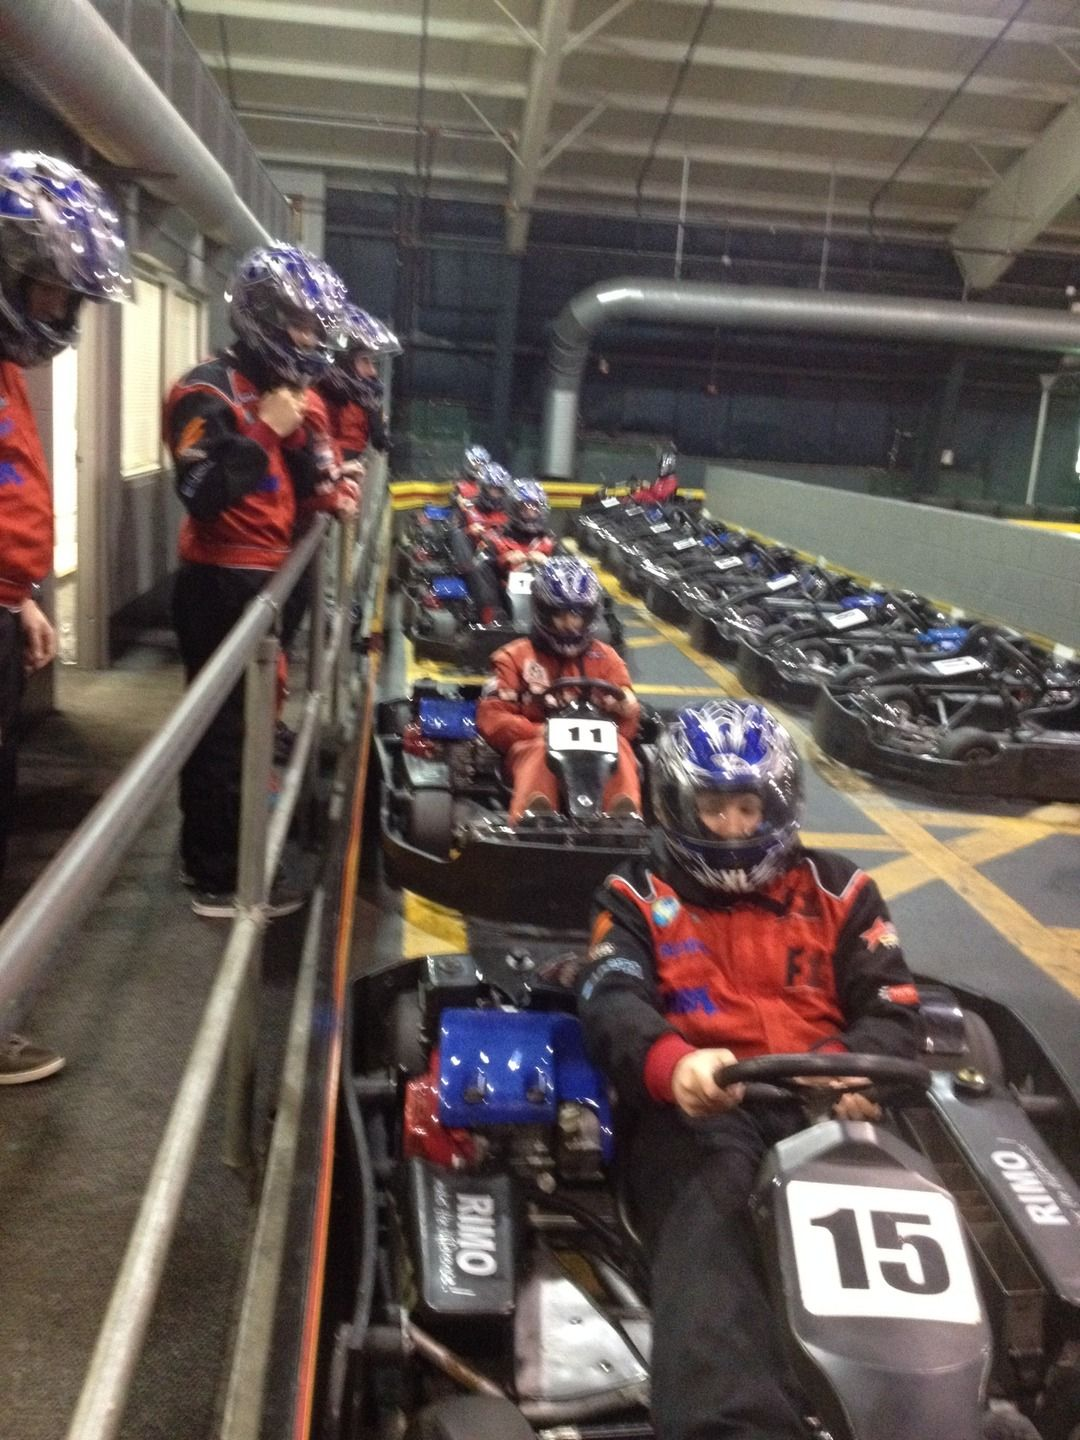 Getting ready to race